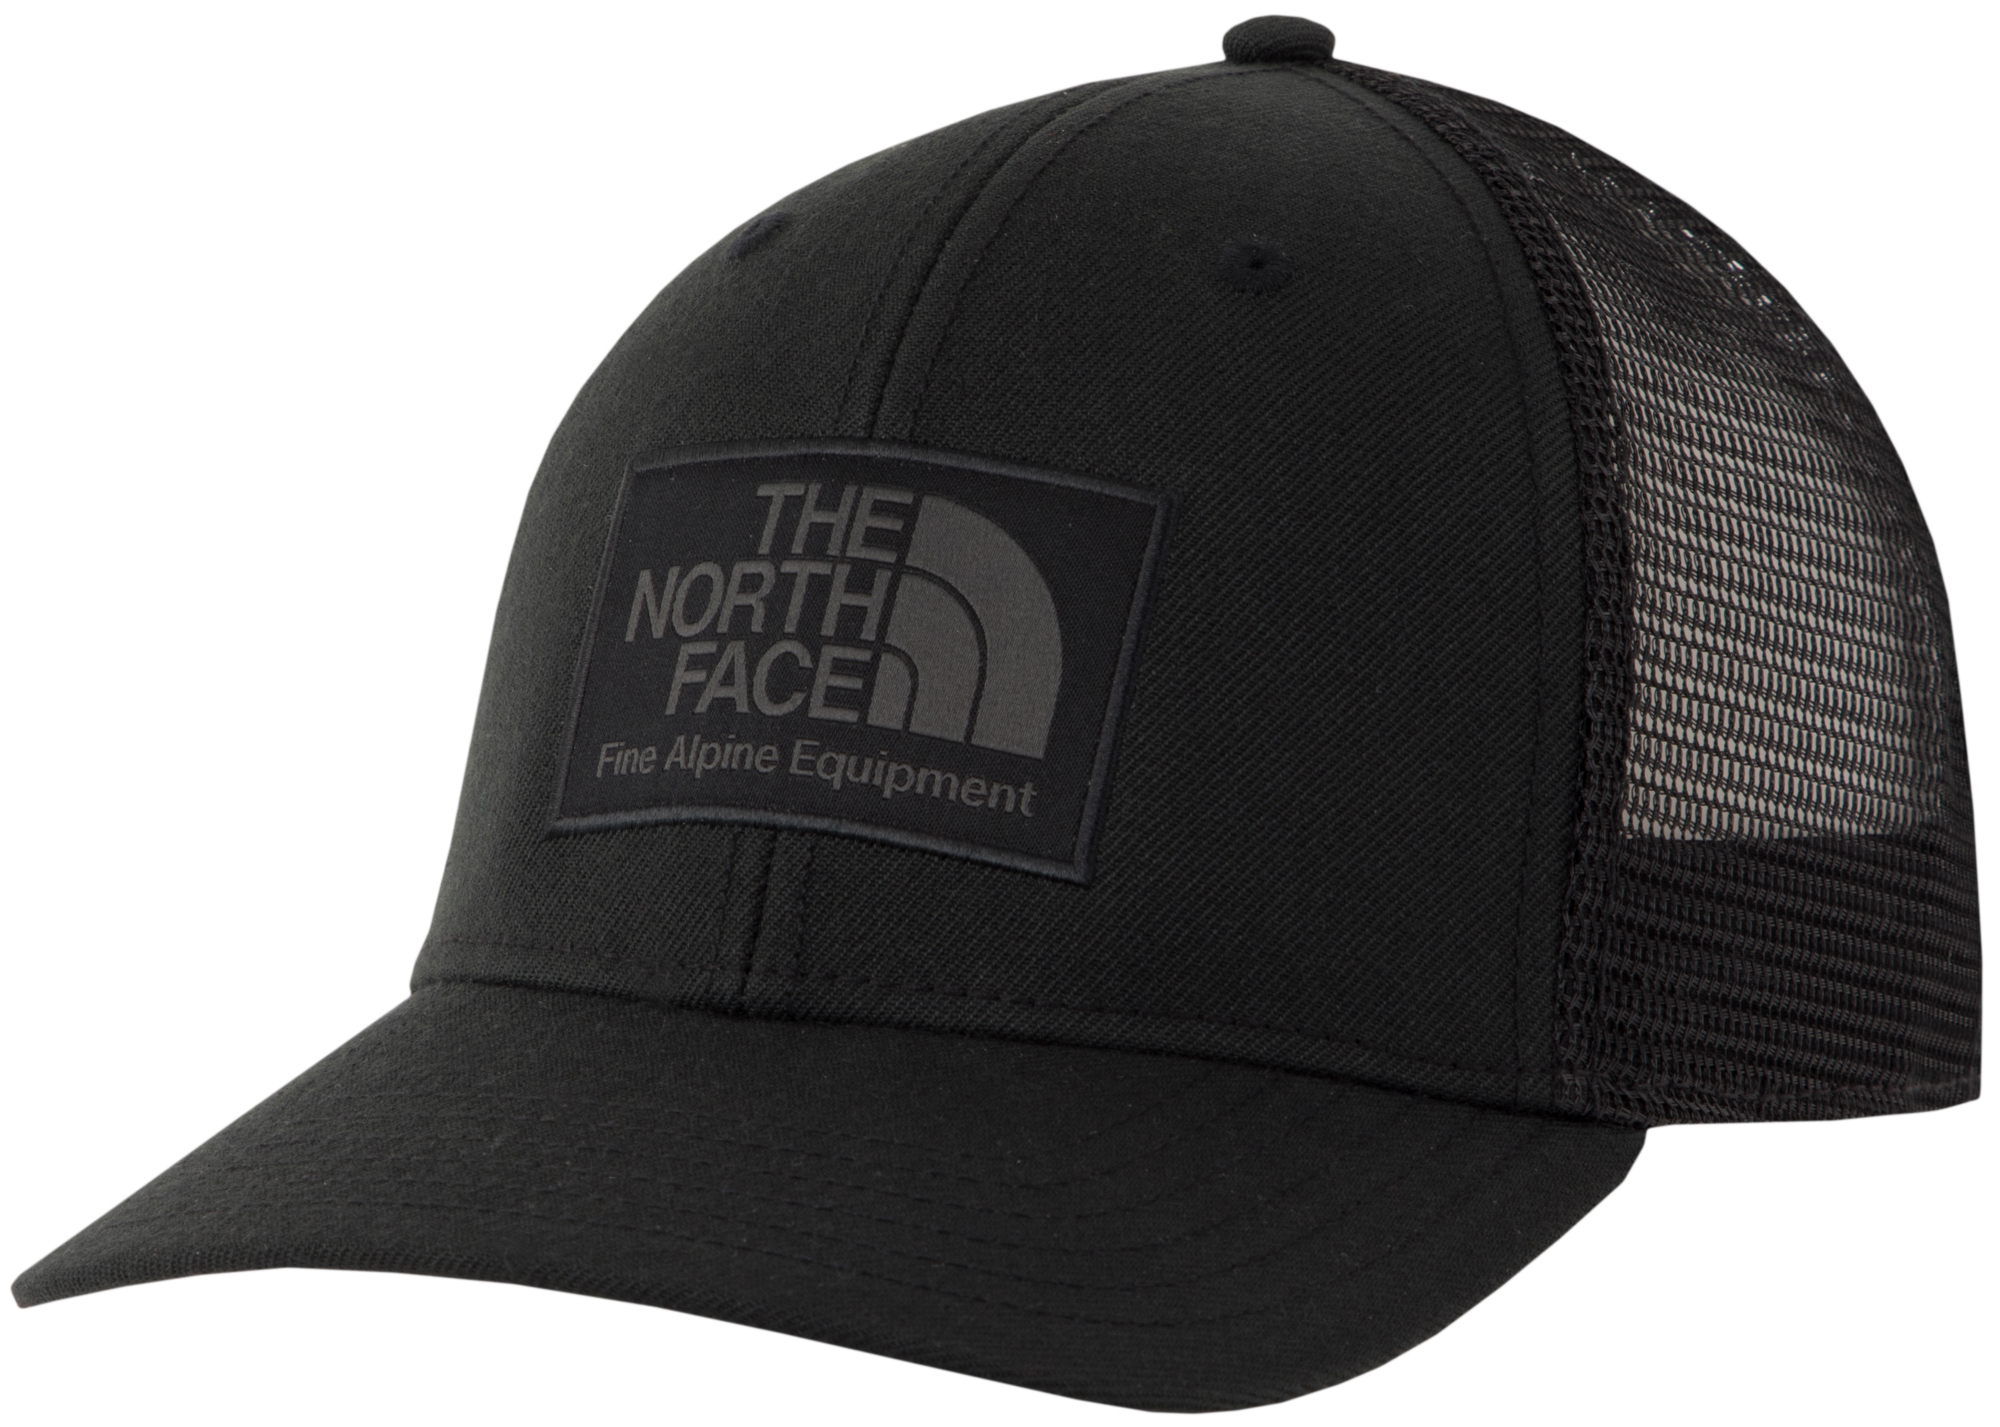 The North Face Бейсболка The North Face Deep Fit Mudder Trucker цена 2017